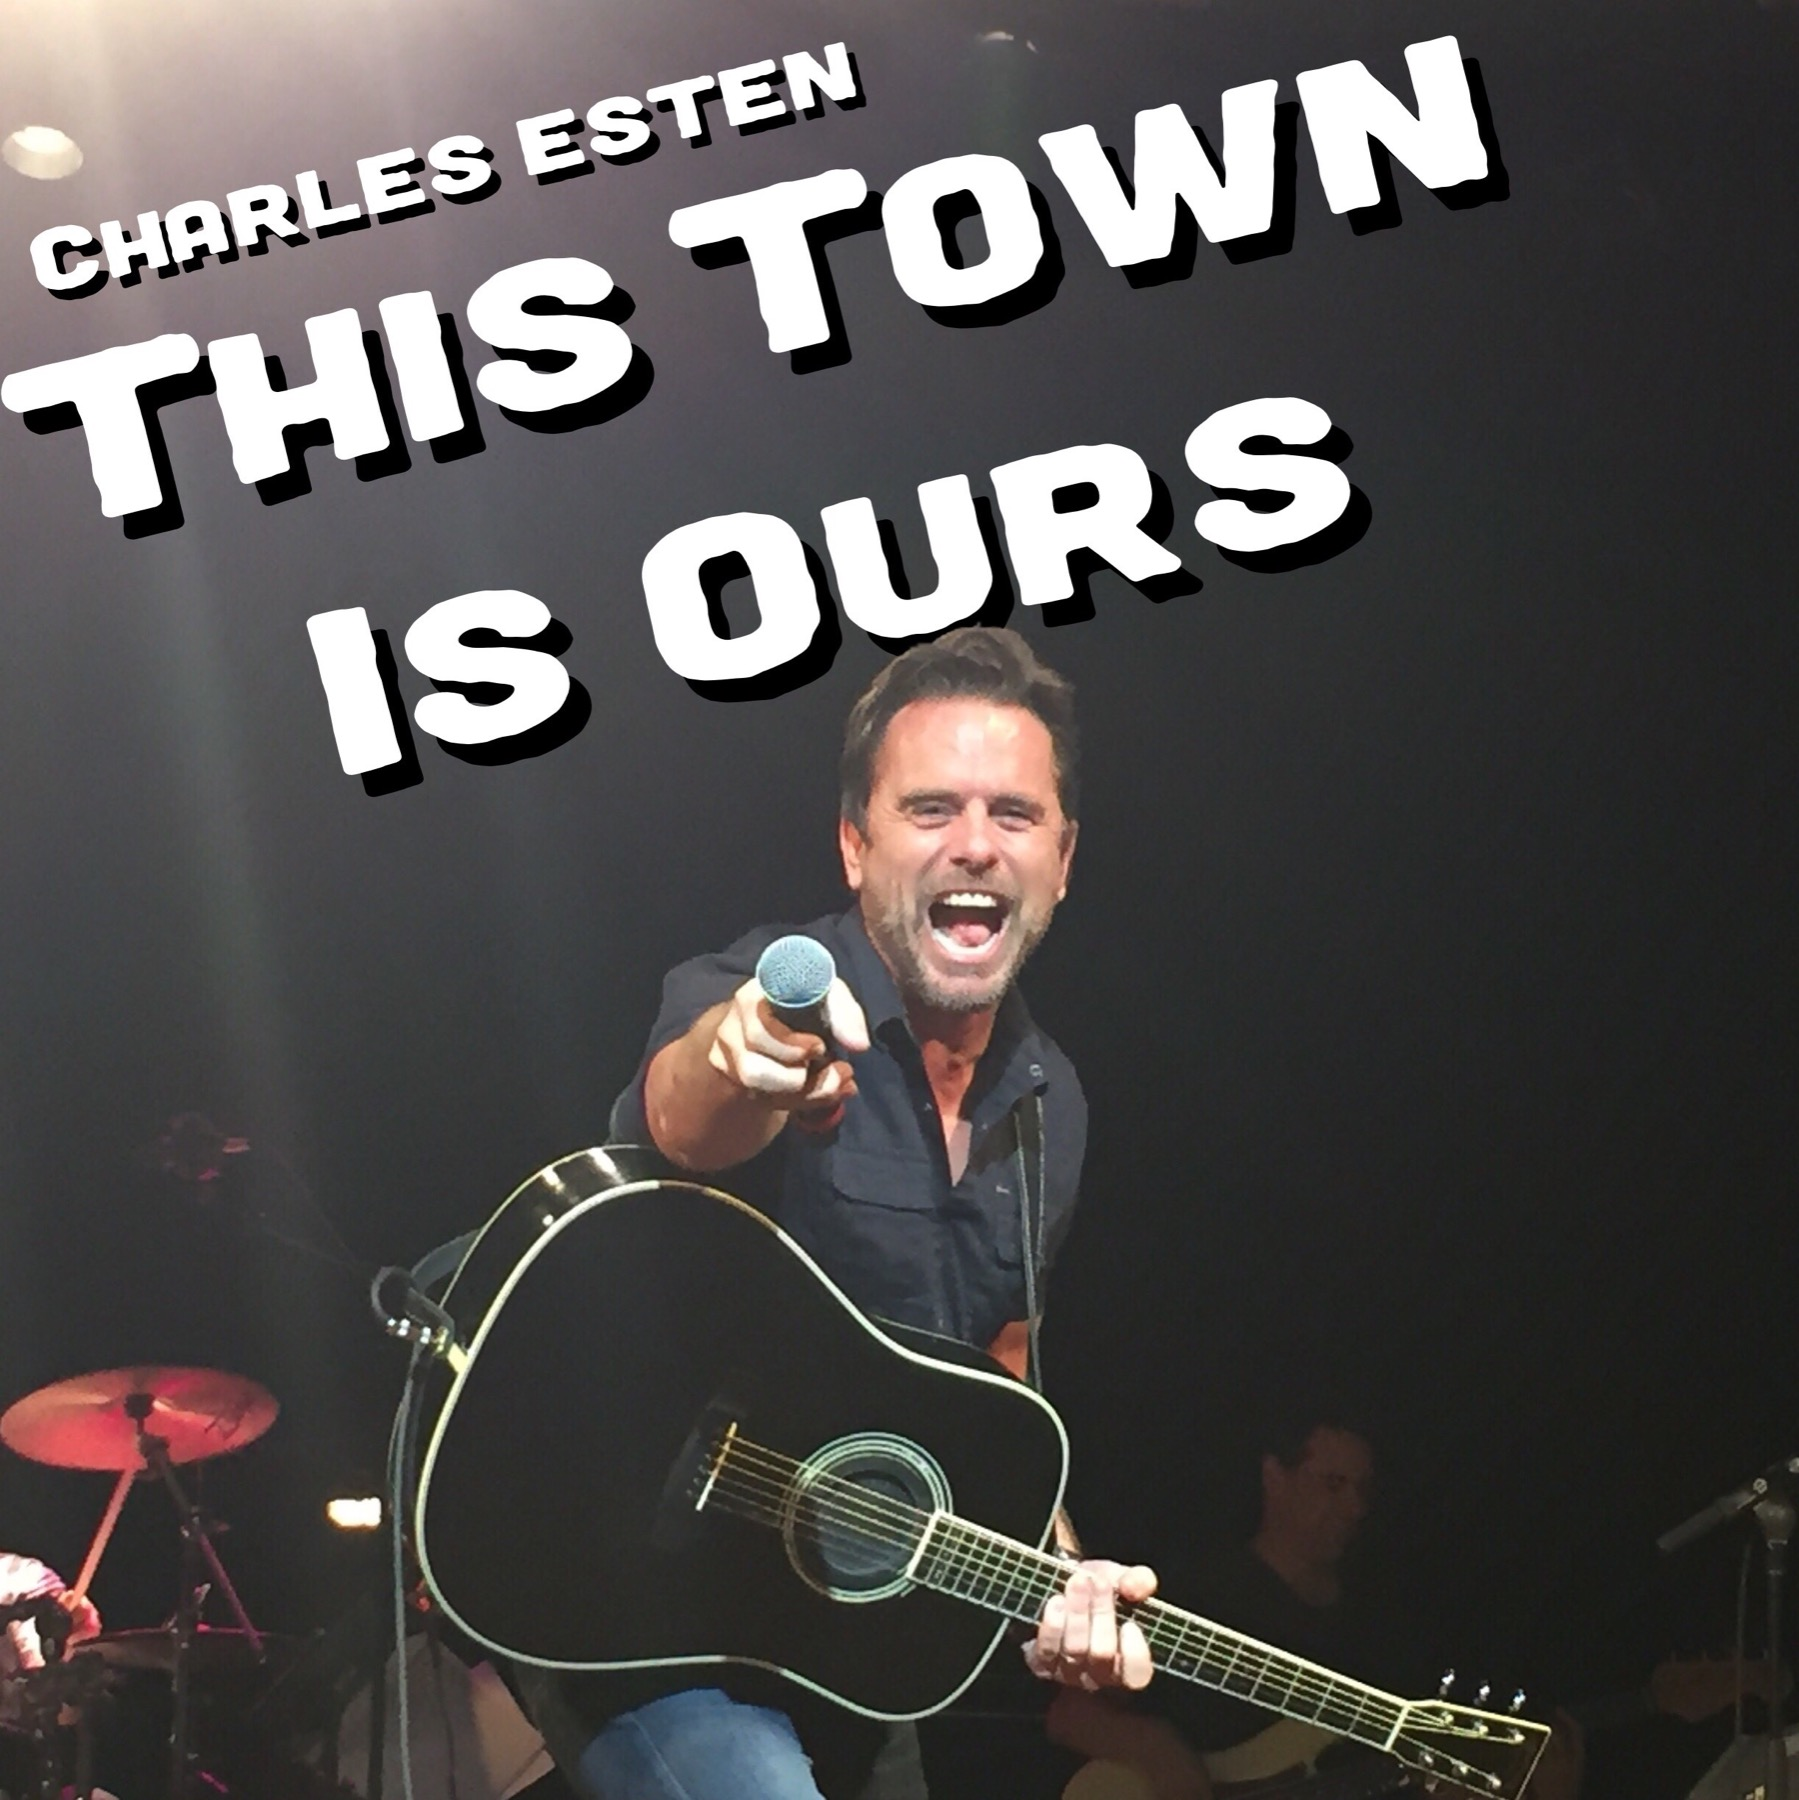 This Town Is Ours